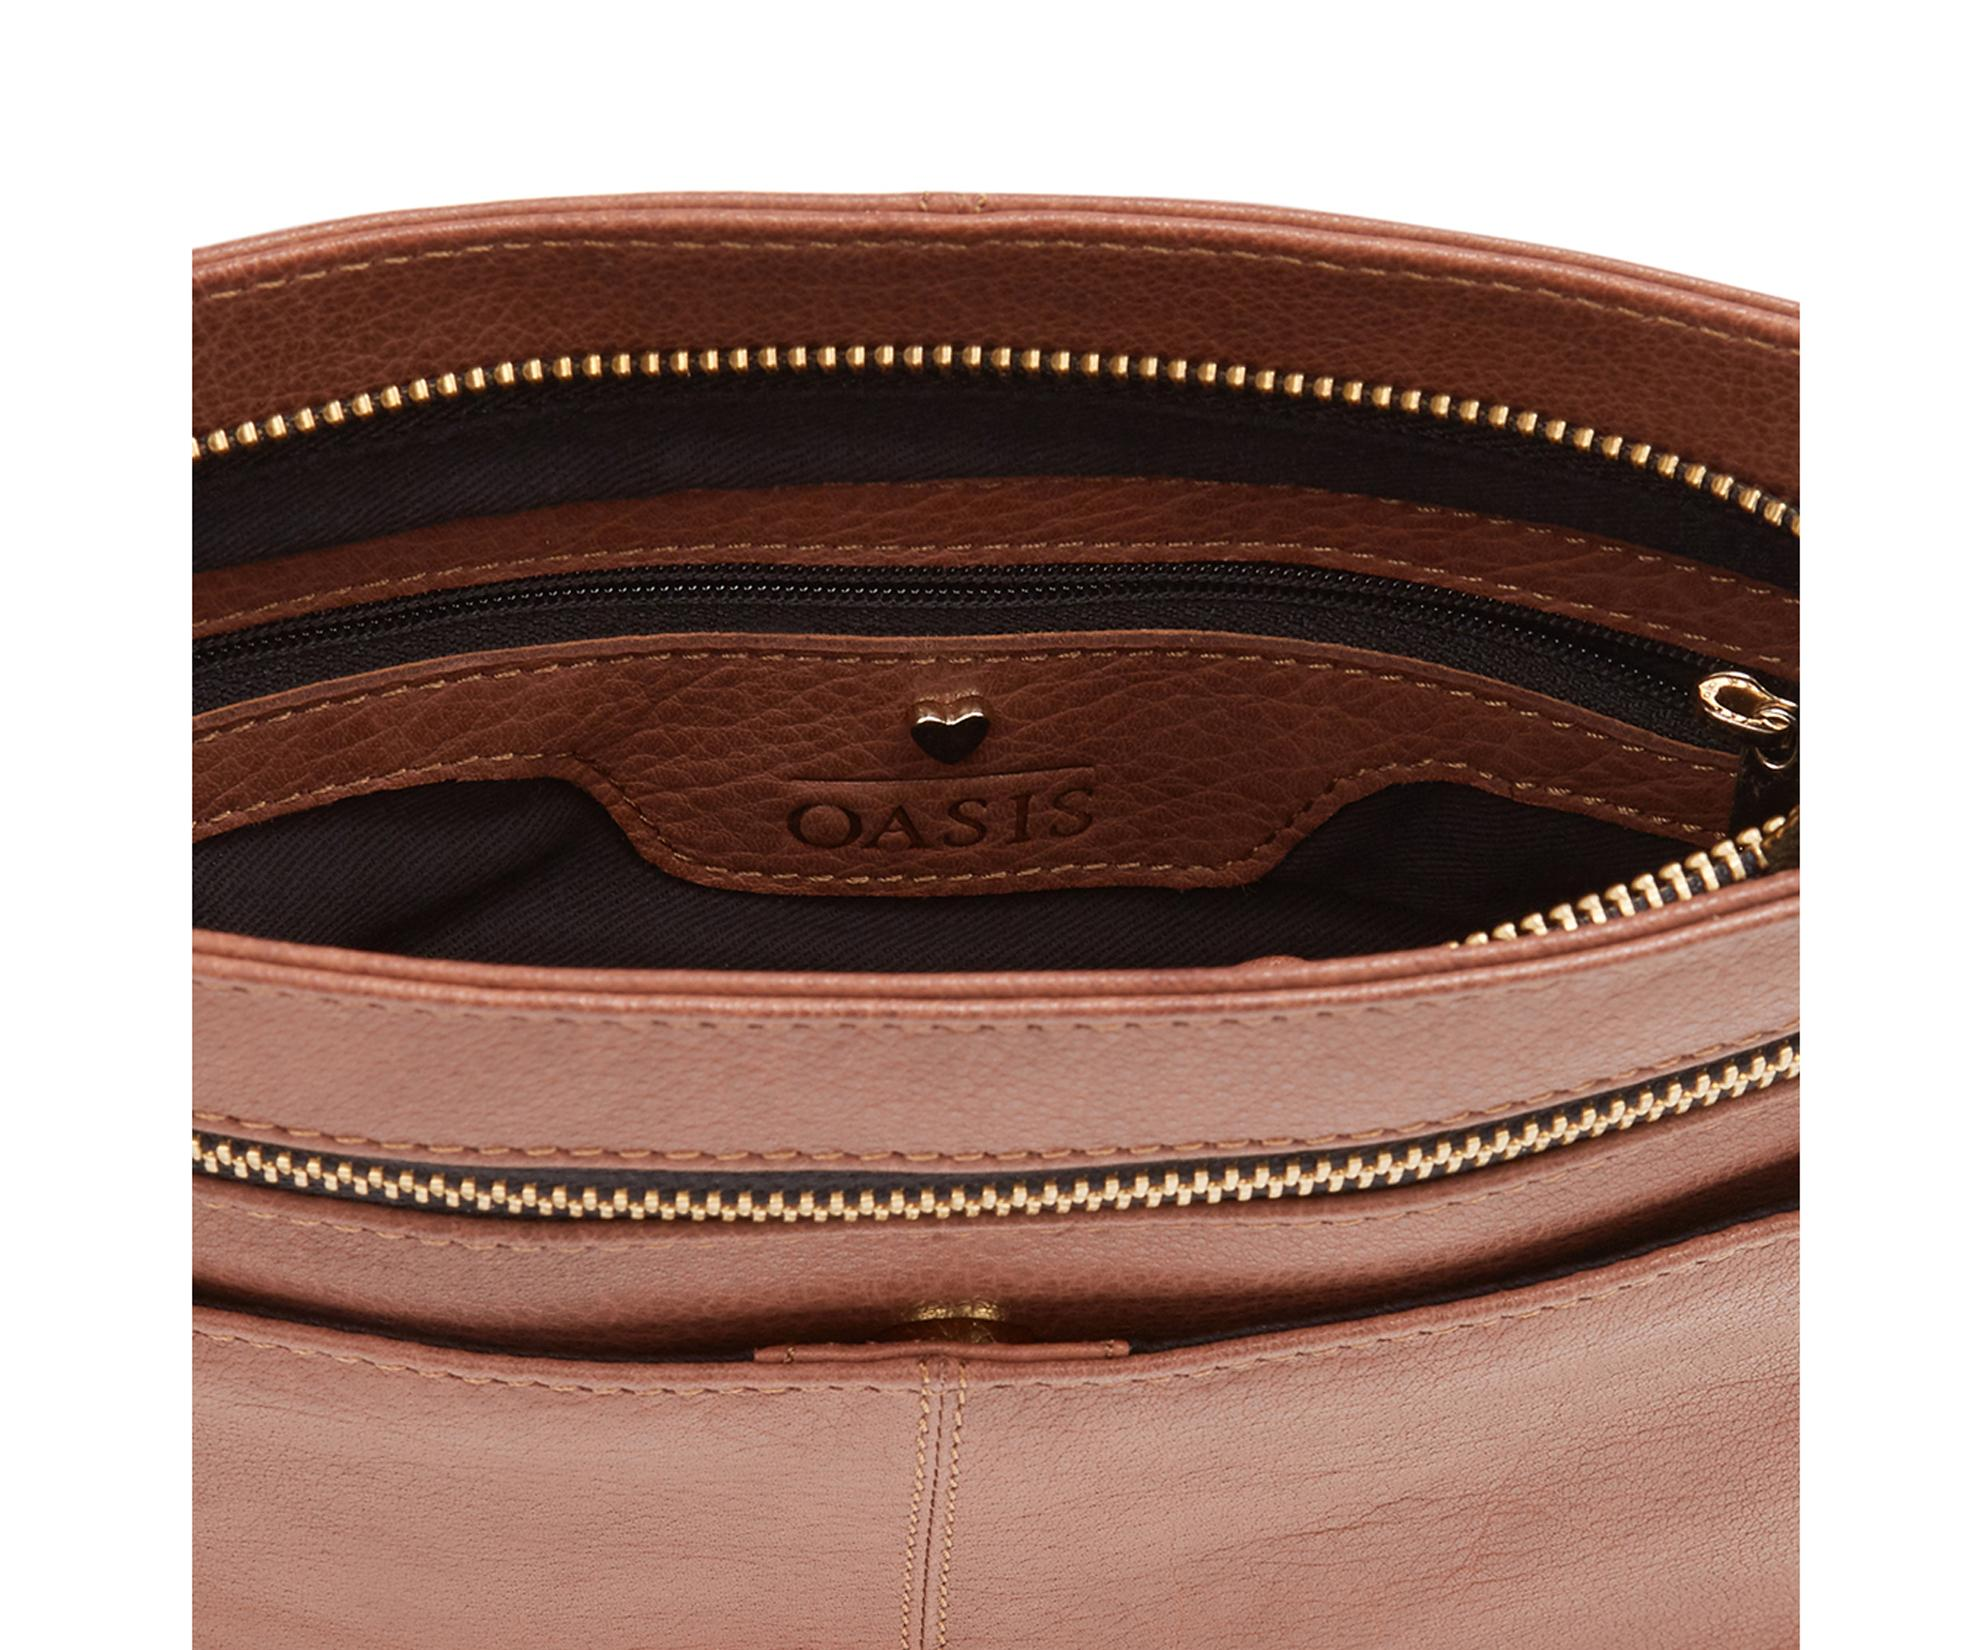 00829244ced4 Lyst - Oasis Leather Anais X Body - Tan